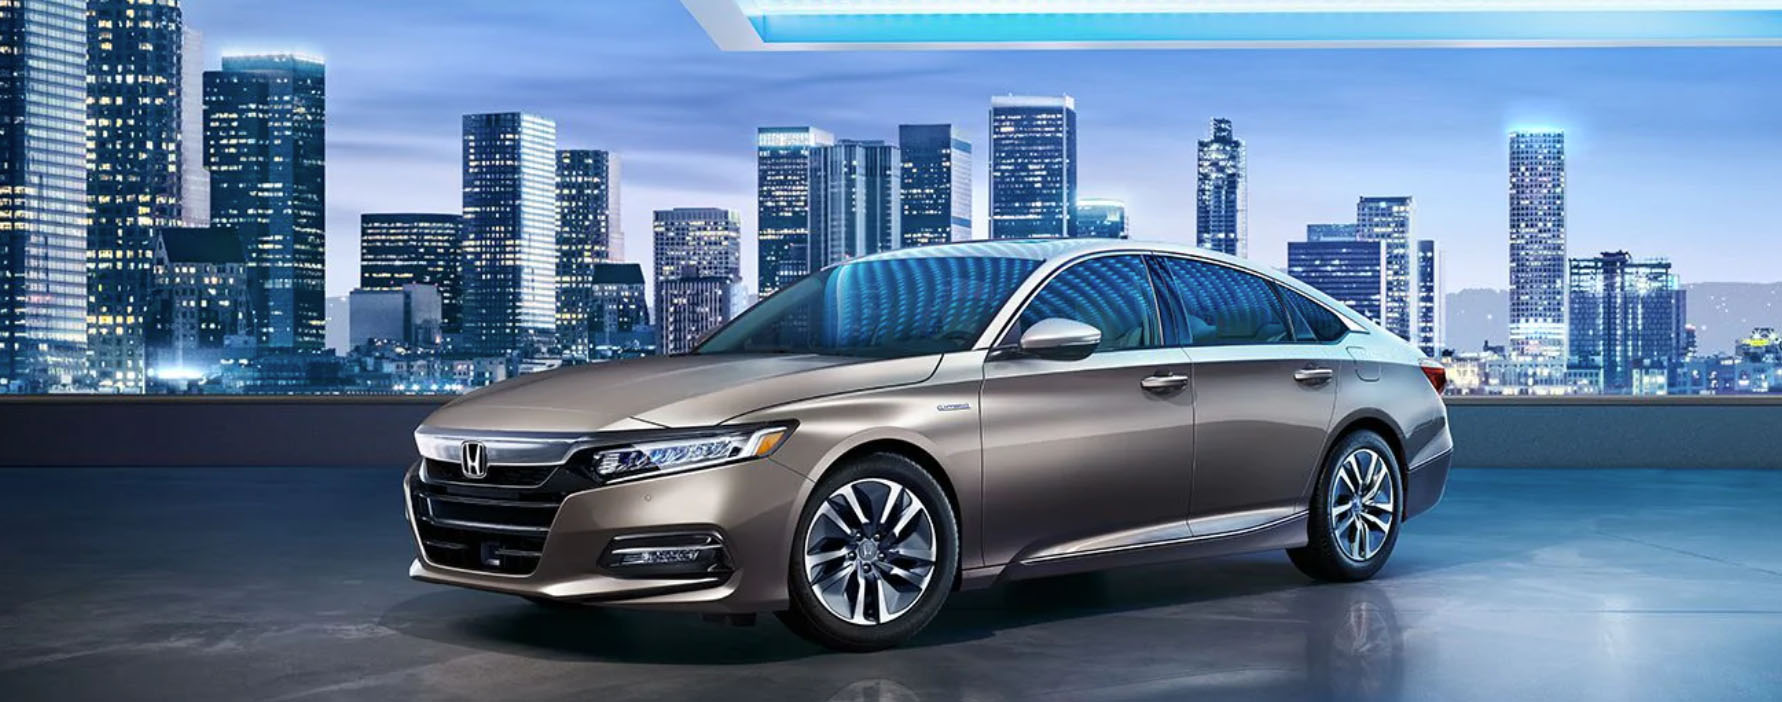 2020 Honda Accord For Sale in Sarasota